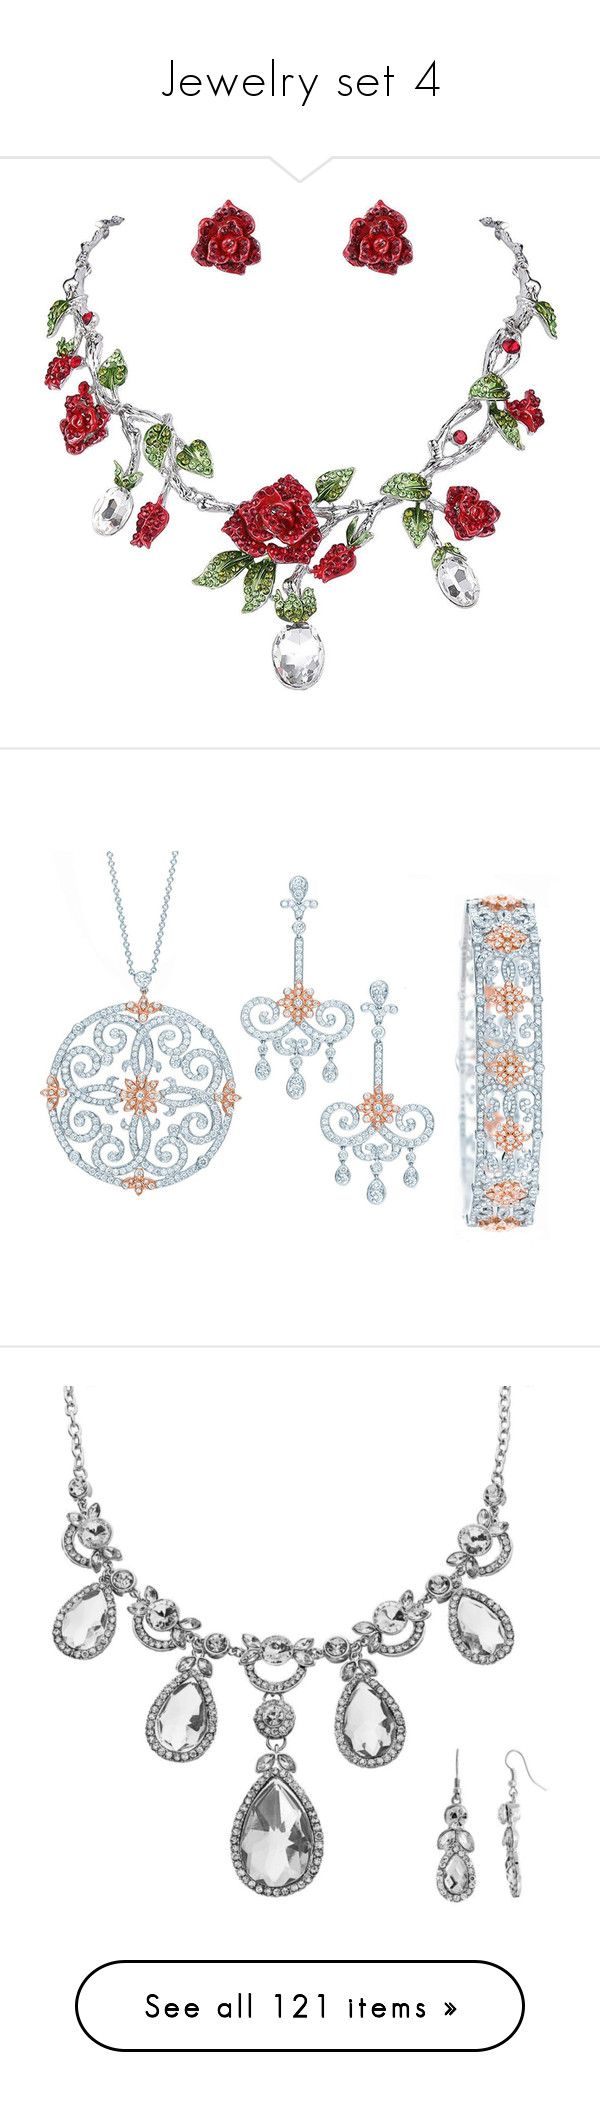 """""""Jewelry set 4"""" by thesassystewart on Polyvore featuring jewelry, earrings, crystal flower earrings, clear crystal earrings, green crystal earrings, rose flower earrings, crystal earrings, accessories, white and fish hook earrings"""